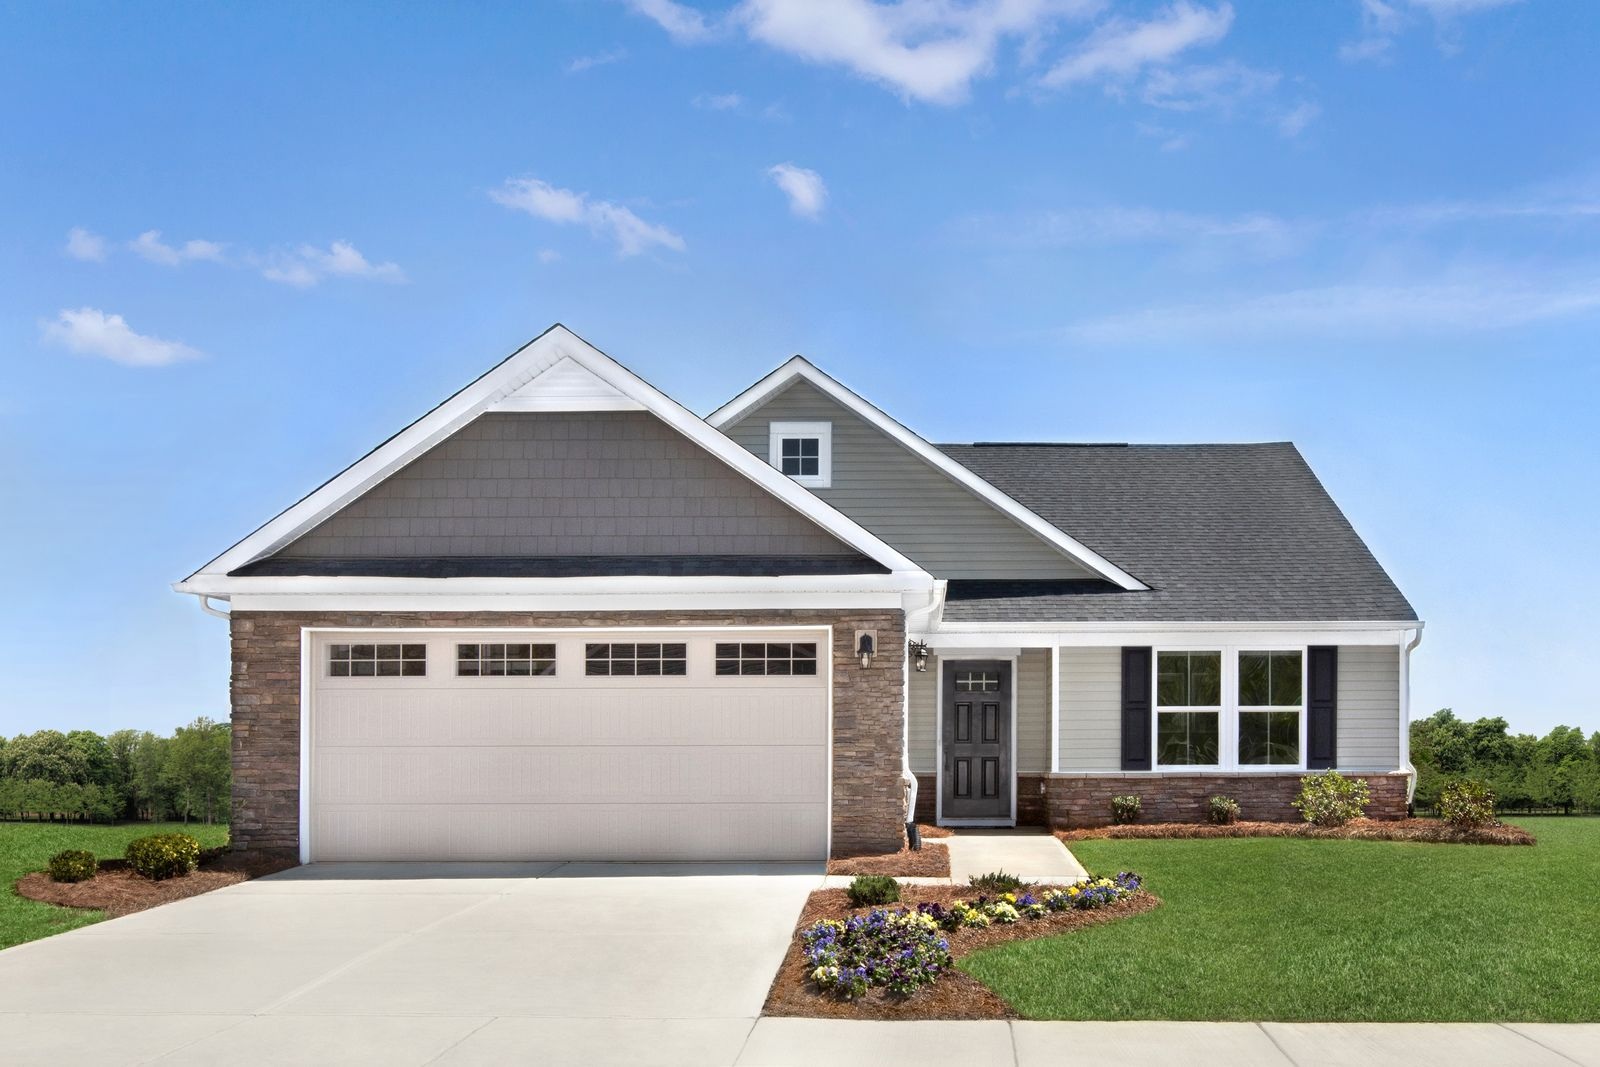 BEST-PRICED NEW RANCHES IN RICHVILLE AT CEDAR GROVE RANCHES:Tucked away from the hustle and bustle with Perry Shopping & Rt 30 minutes away! Landscaping included and lawn care available. From the $190s. Click here to schedule your visit today!